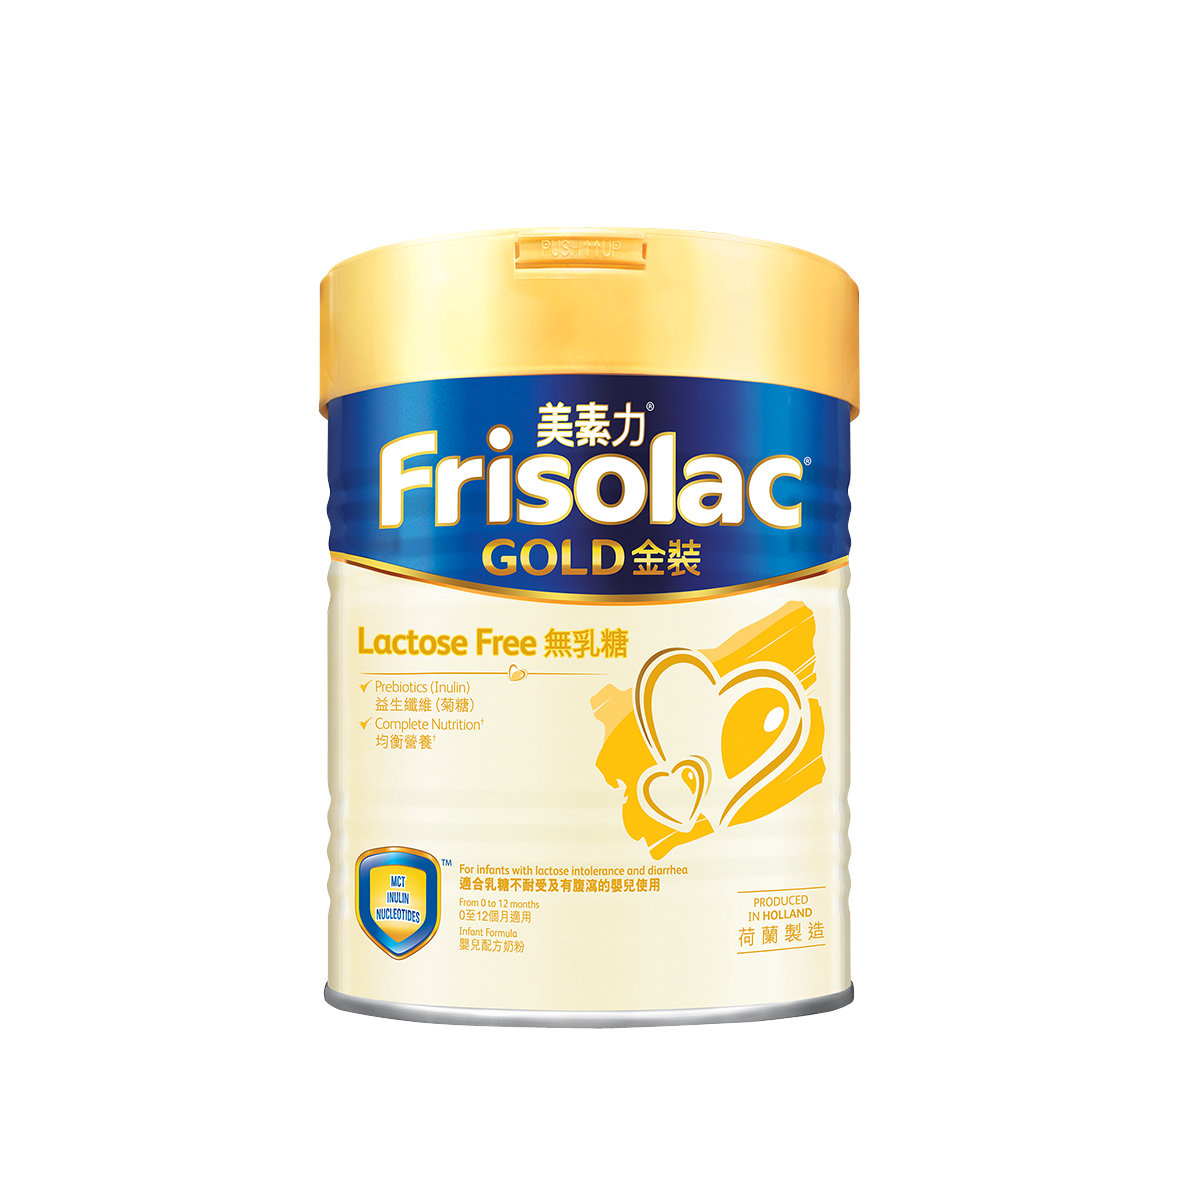 Frisolac®Gold Lactose Free